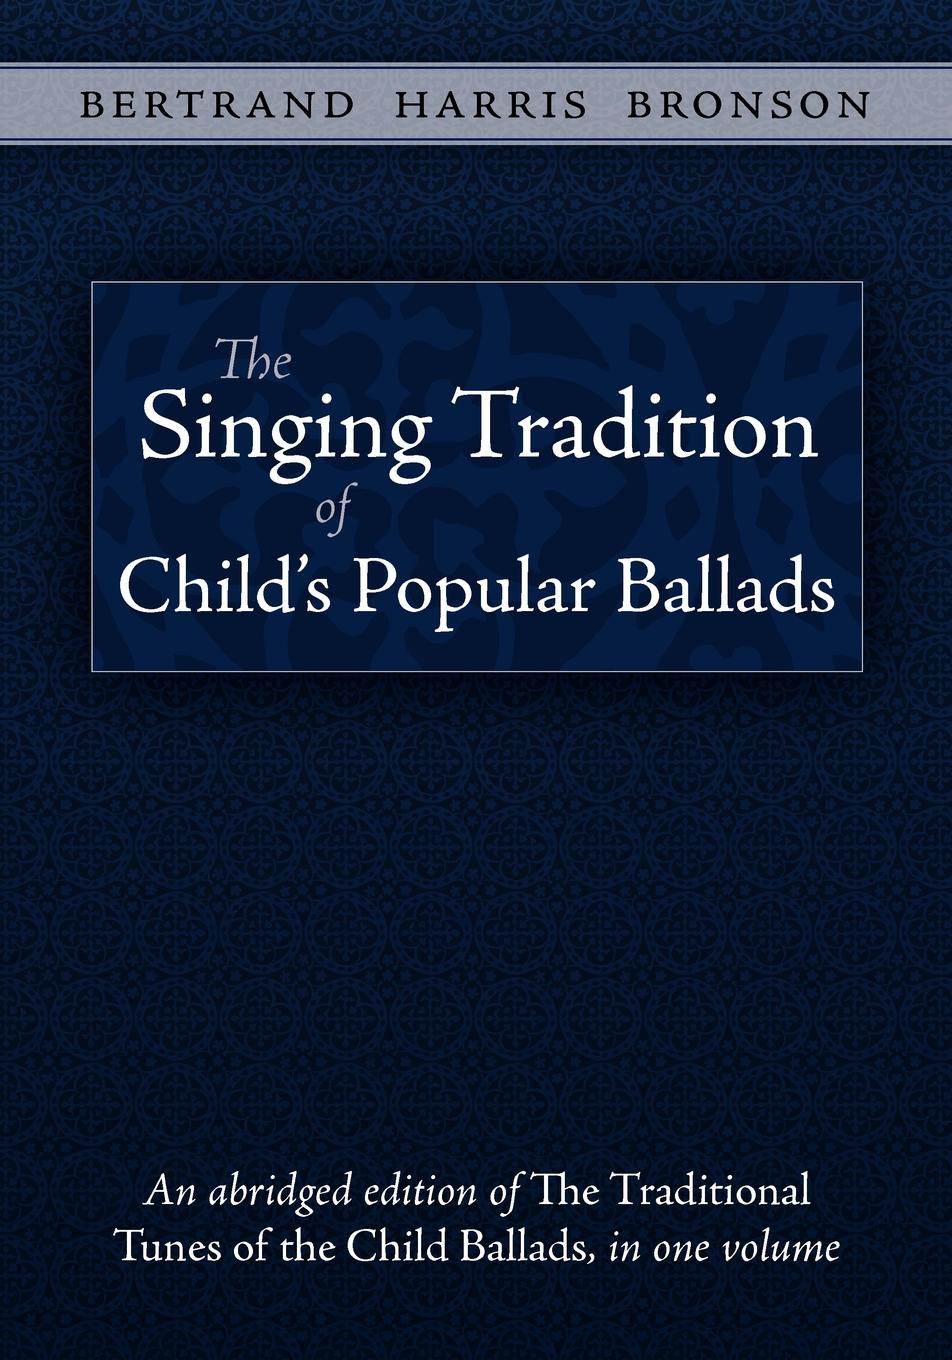 Bertrand Harris Bronson The Singing Tradition of Child's Popular Ballads rose jeffries peebles the legend of longinus in ecclesiastical tradition and in english literature and its connection with the grail